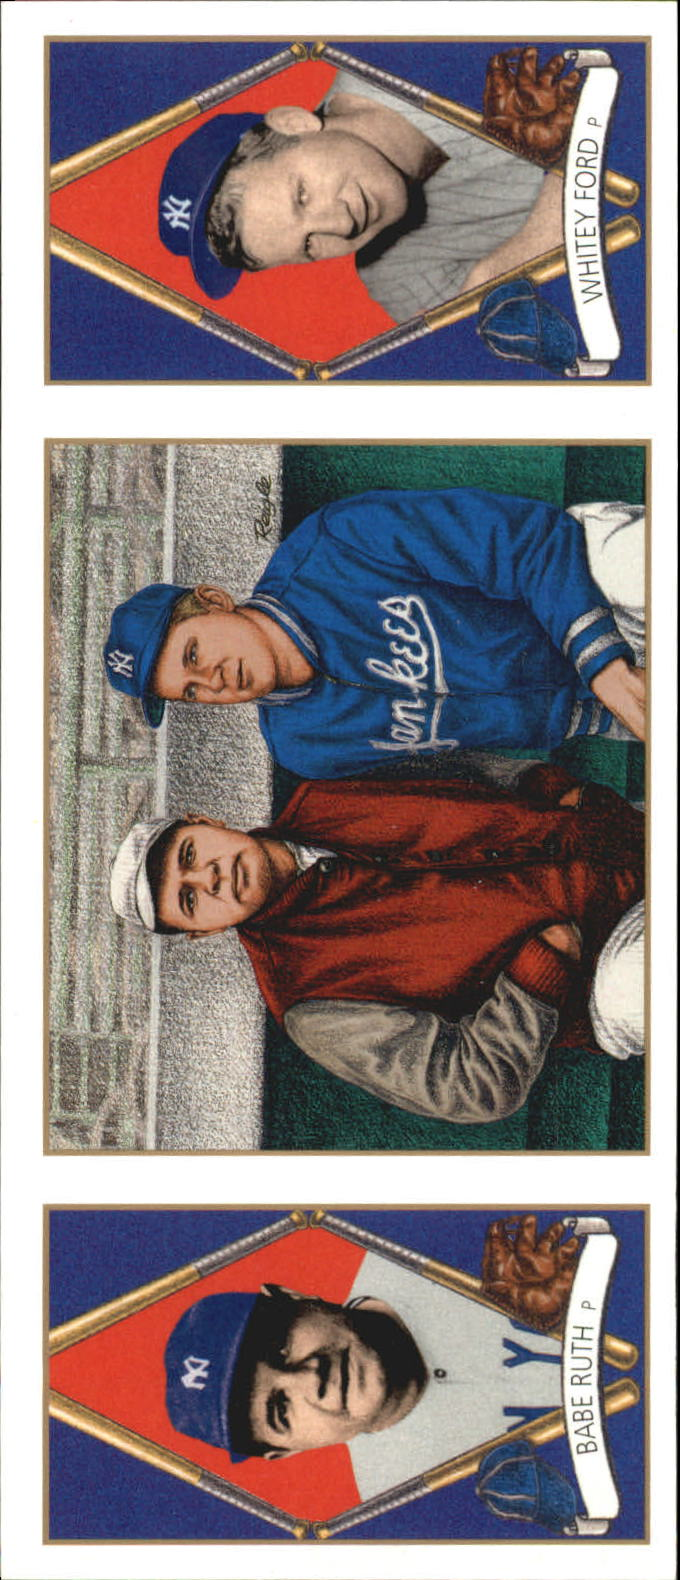 1993 Upper Deck All-Time Heroes #152 Babe Ruth/Whitey Ford